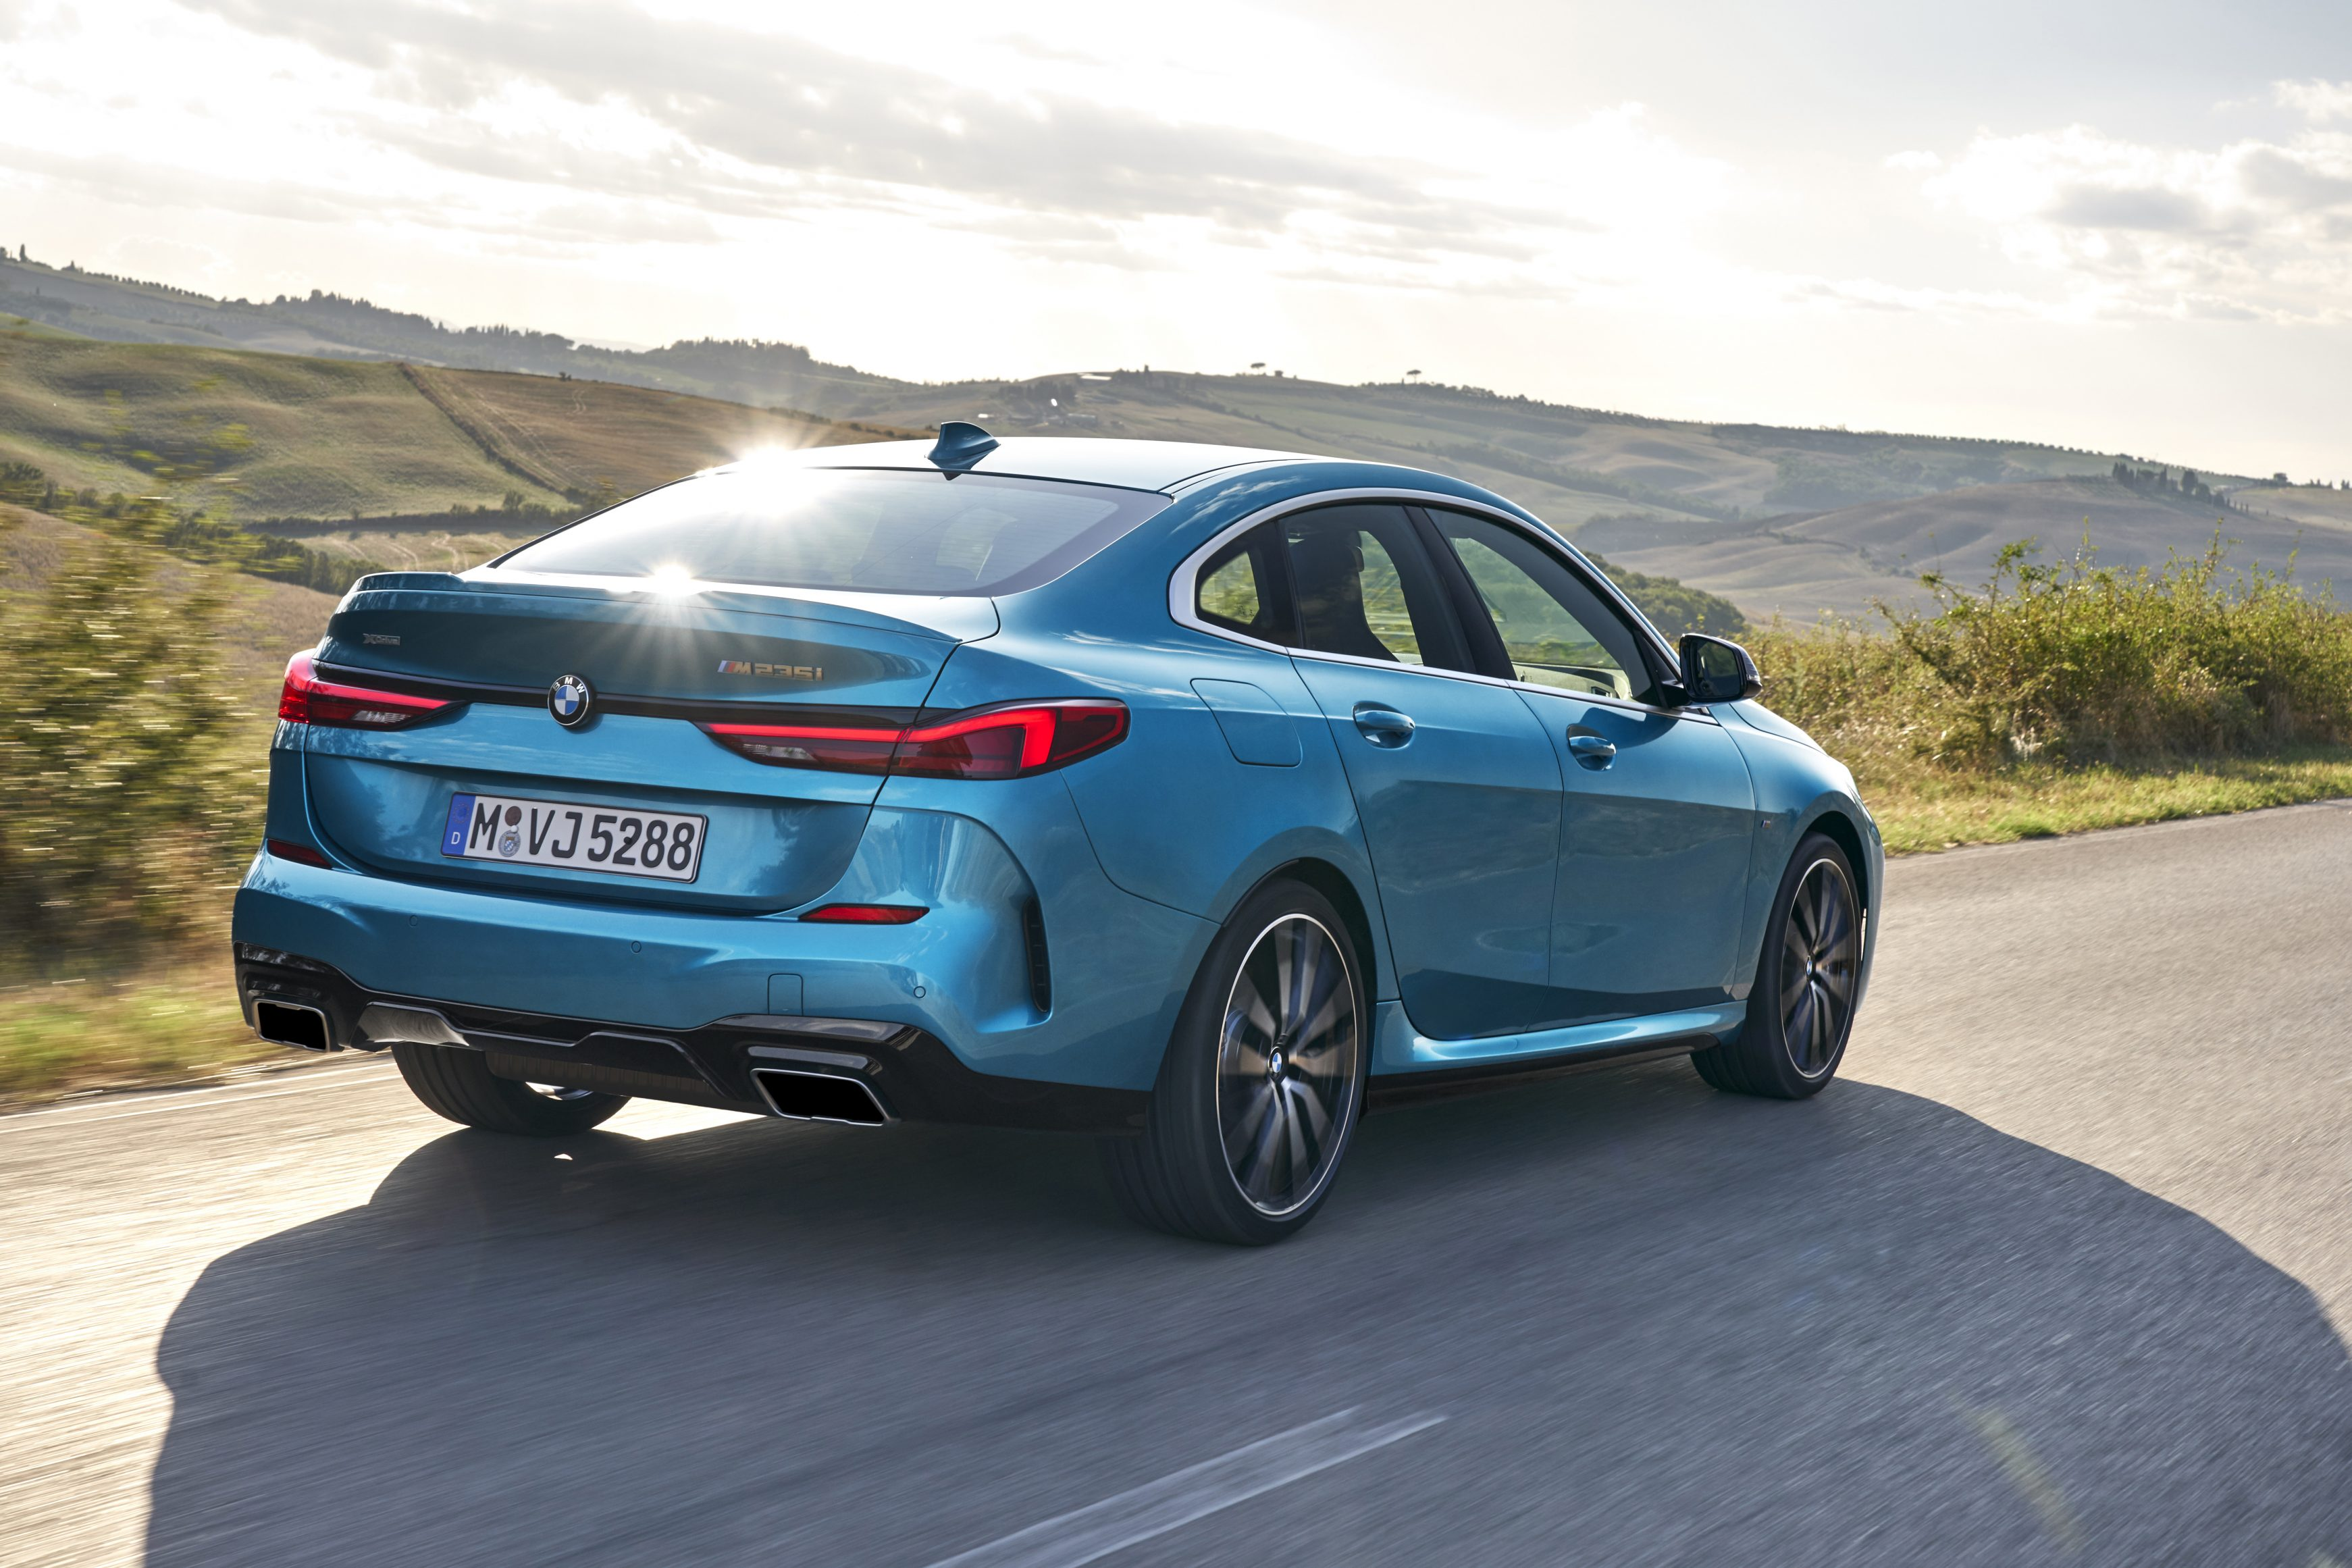 BMW 2 Series Gran Coupe from the rear